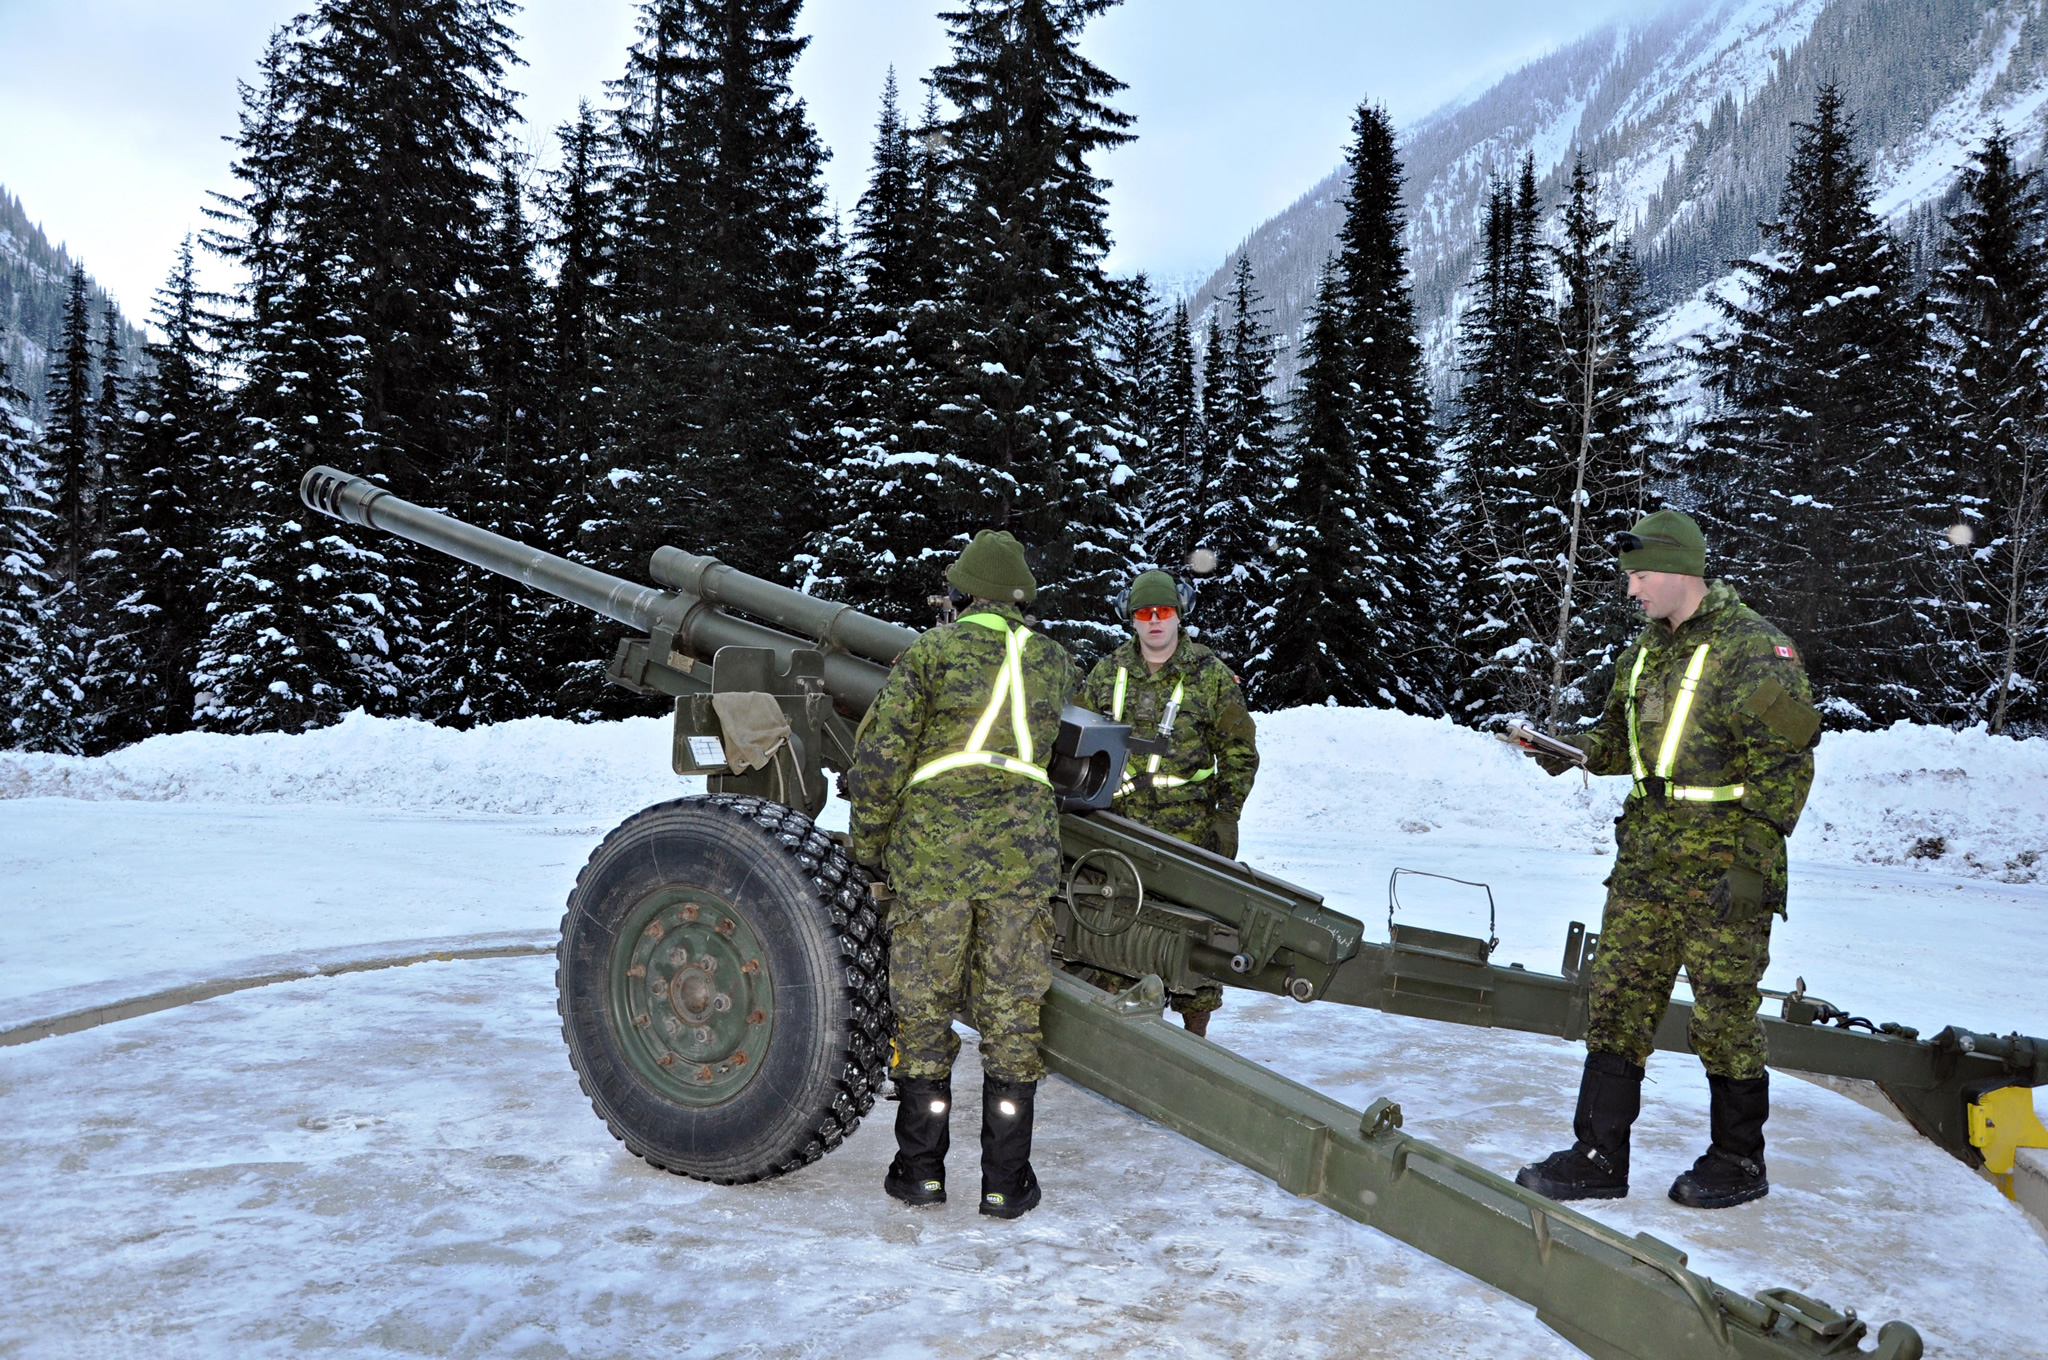 Three soldiers load a large gun aimed at the mountains.